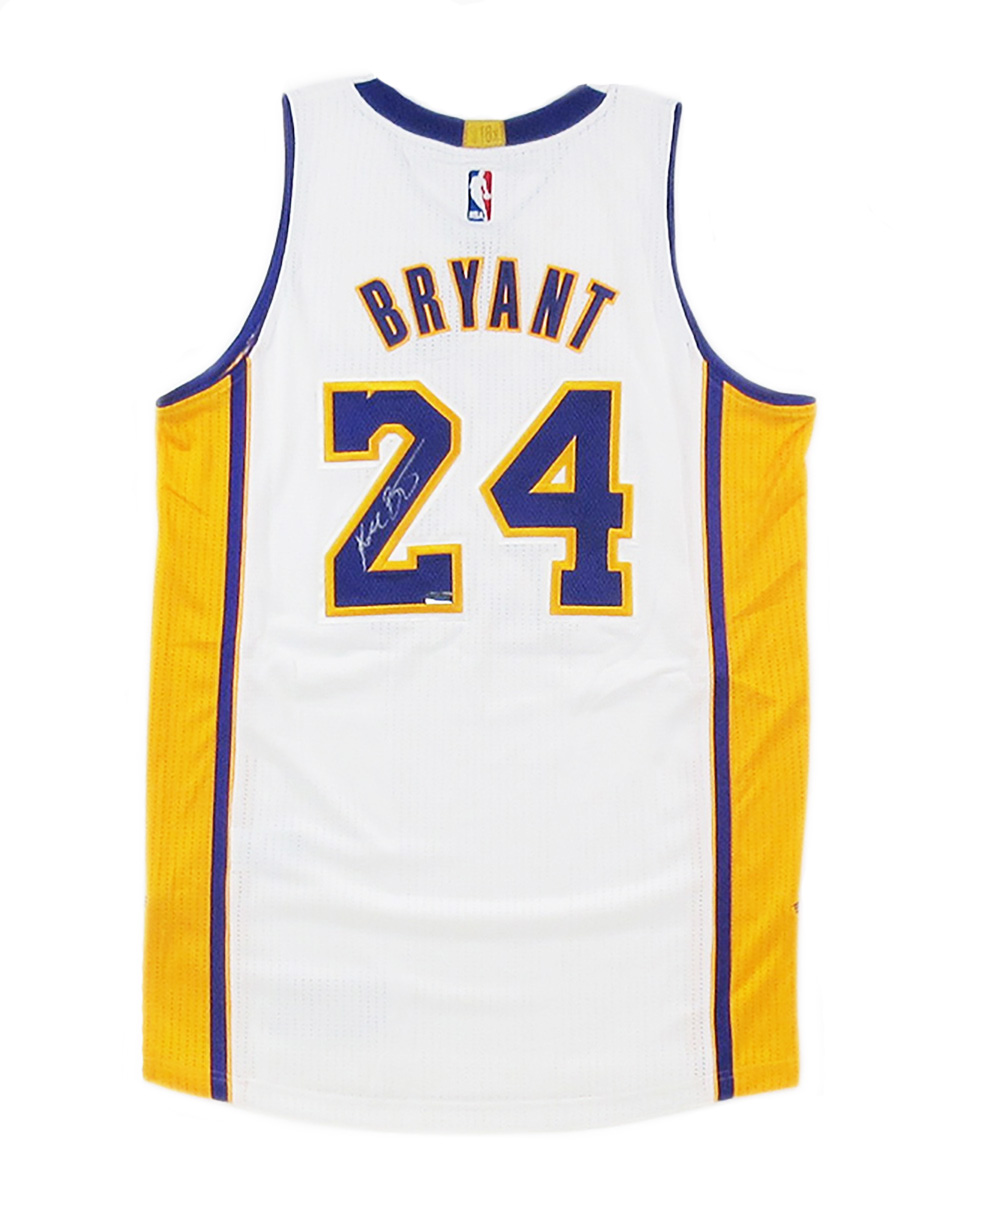 100% authentic 10bfd e6dc6 Kobe Bryant Signed Los Angeles Lakers White 2014 Adidas Authentic NBA  Jersey - Panini